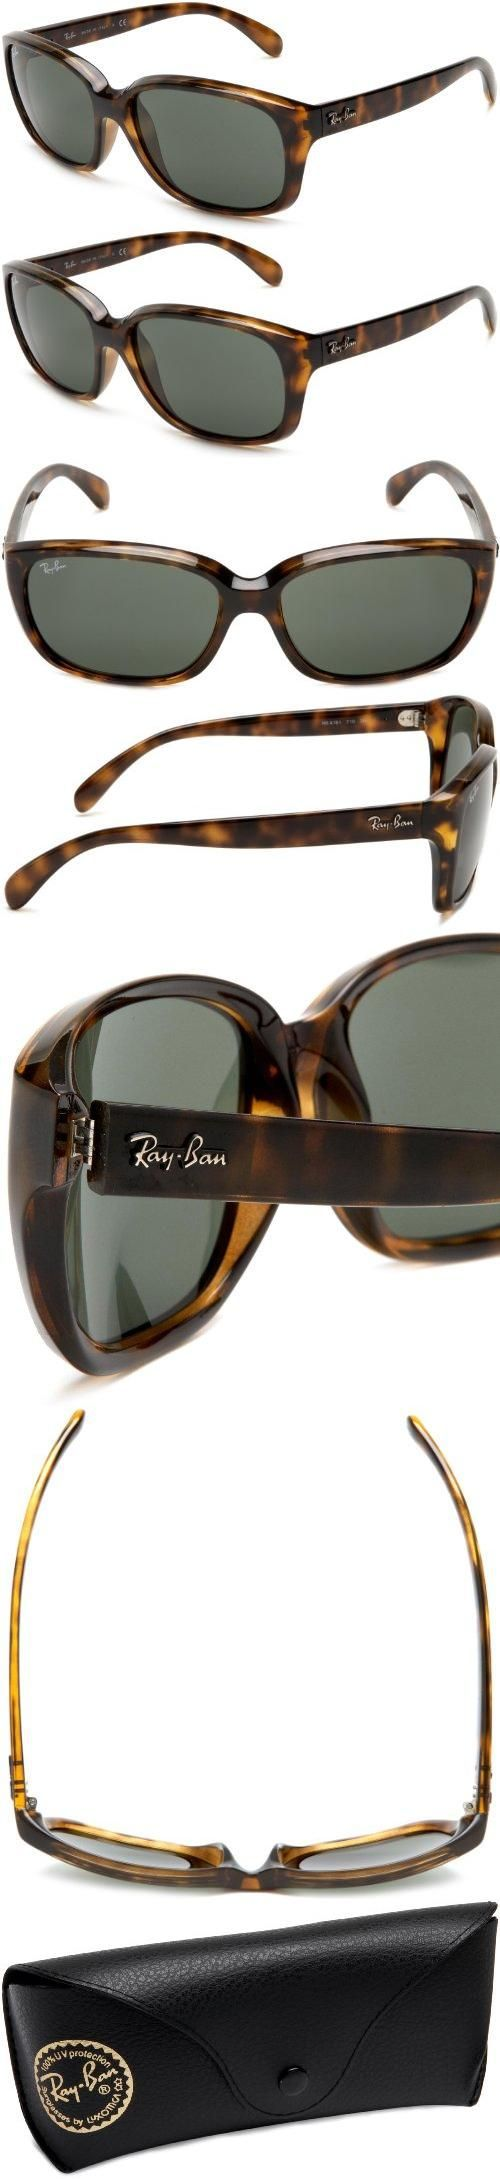 Ray Ban Active Lifestyle Sunglasses Is Extremely Fashionable With Best Quality And Service!